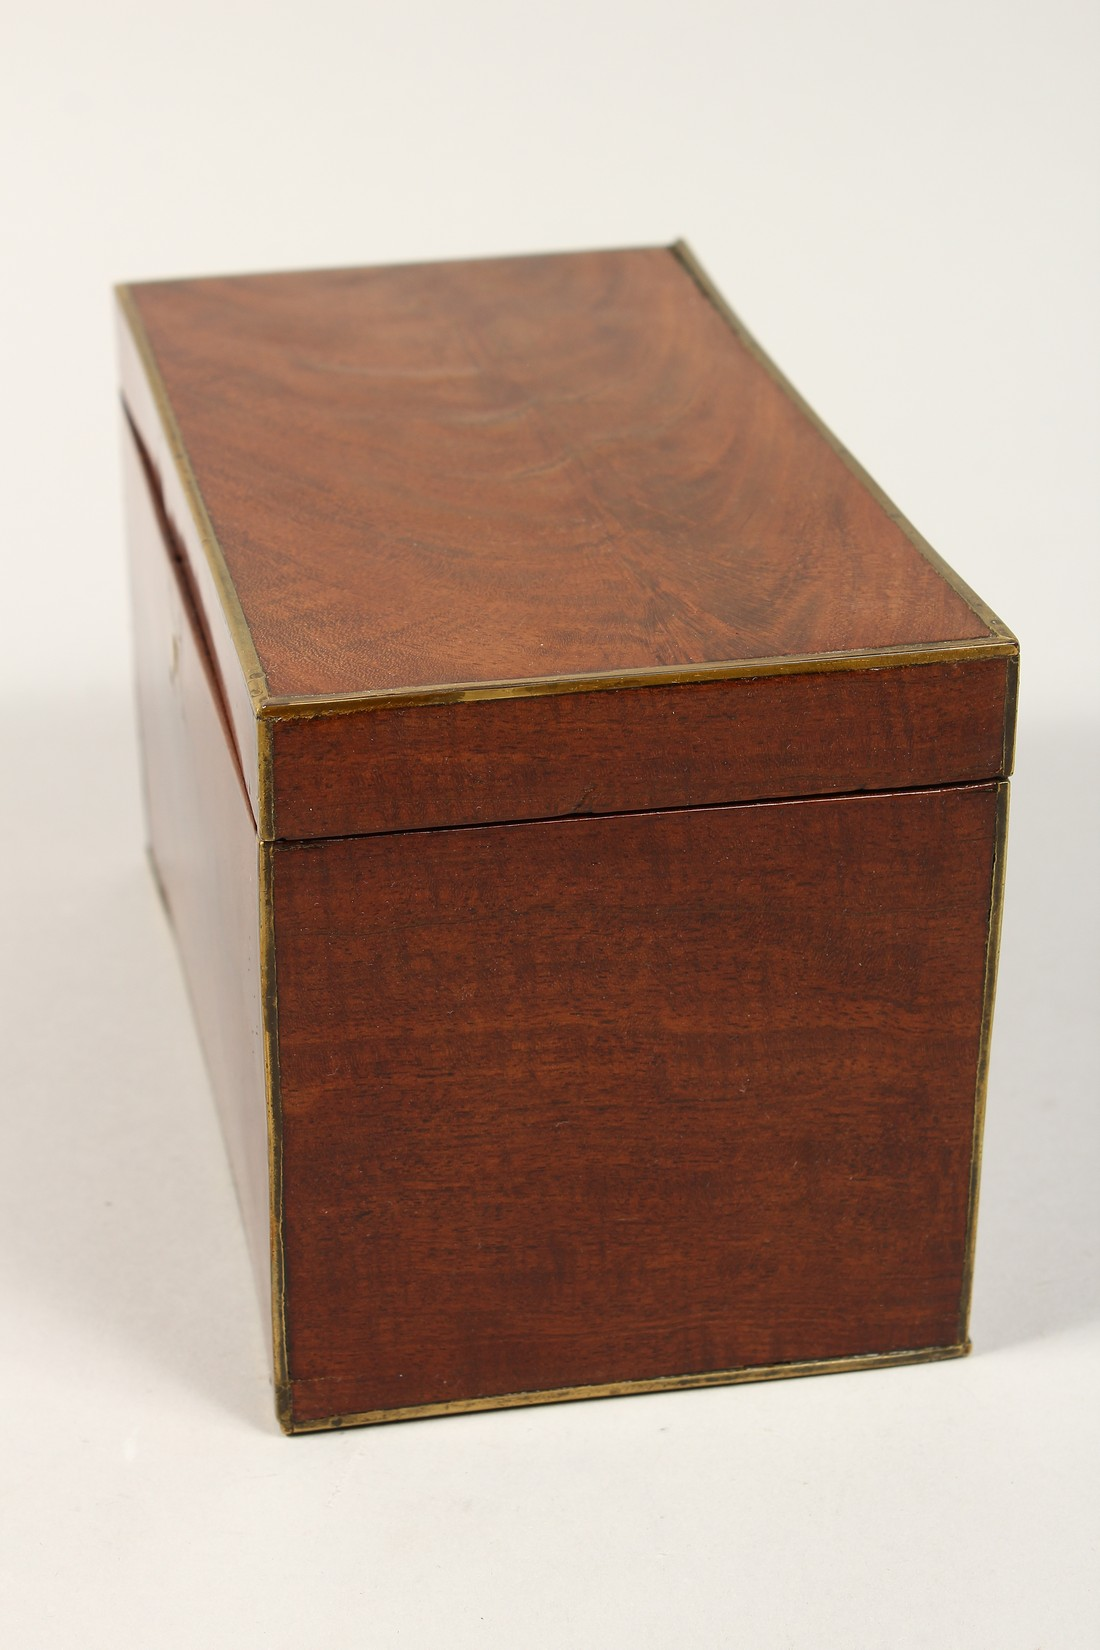 A REGENCY MAHOGANY TWO DIVISION TEA CADDY with brass stringing. 8ins long - Image 2 of 7